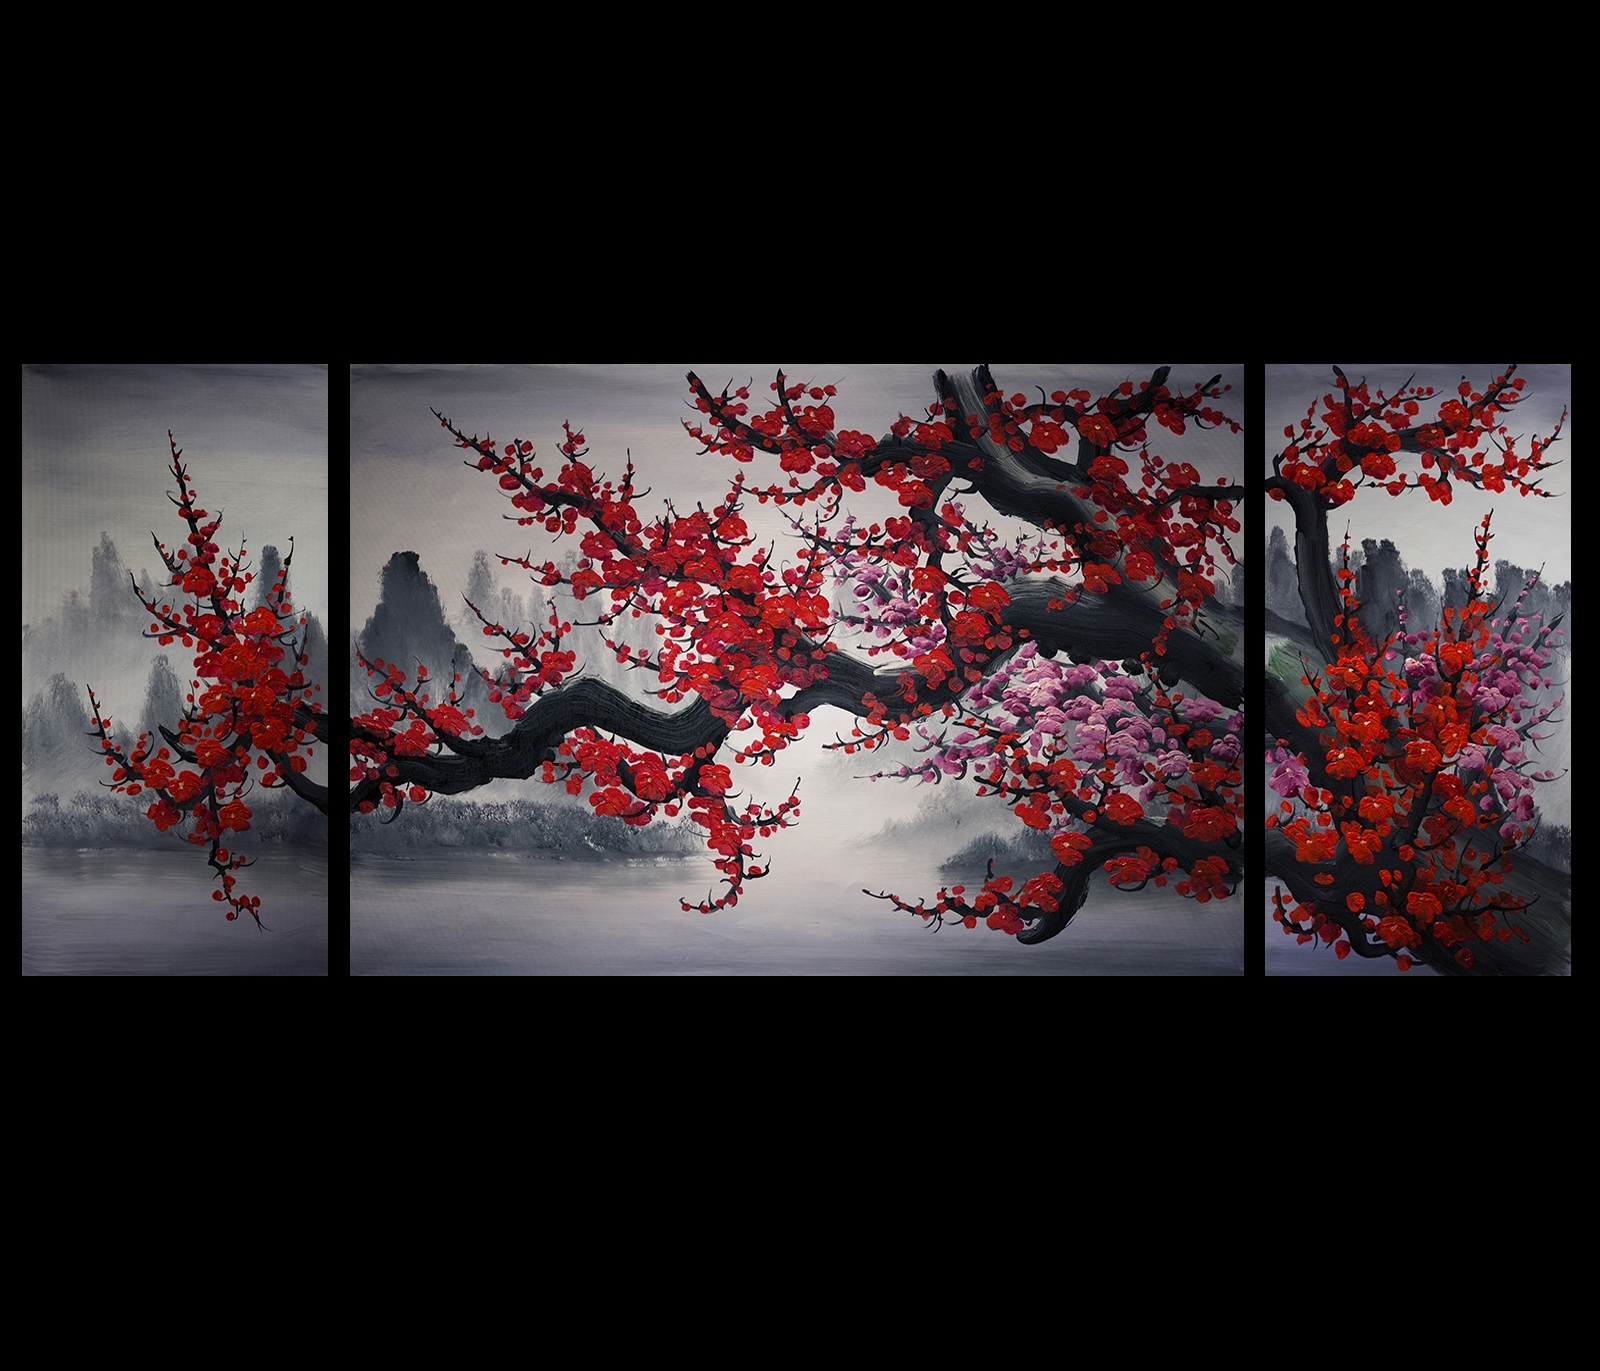 Image Gallery Modern Cherry Blossom Art, Asian Wall Art - Swinki Morskie within Asian Wall Art (Image 16 of 20)